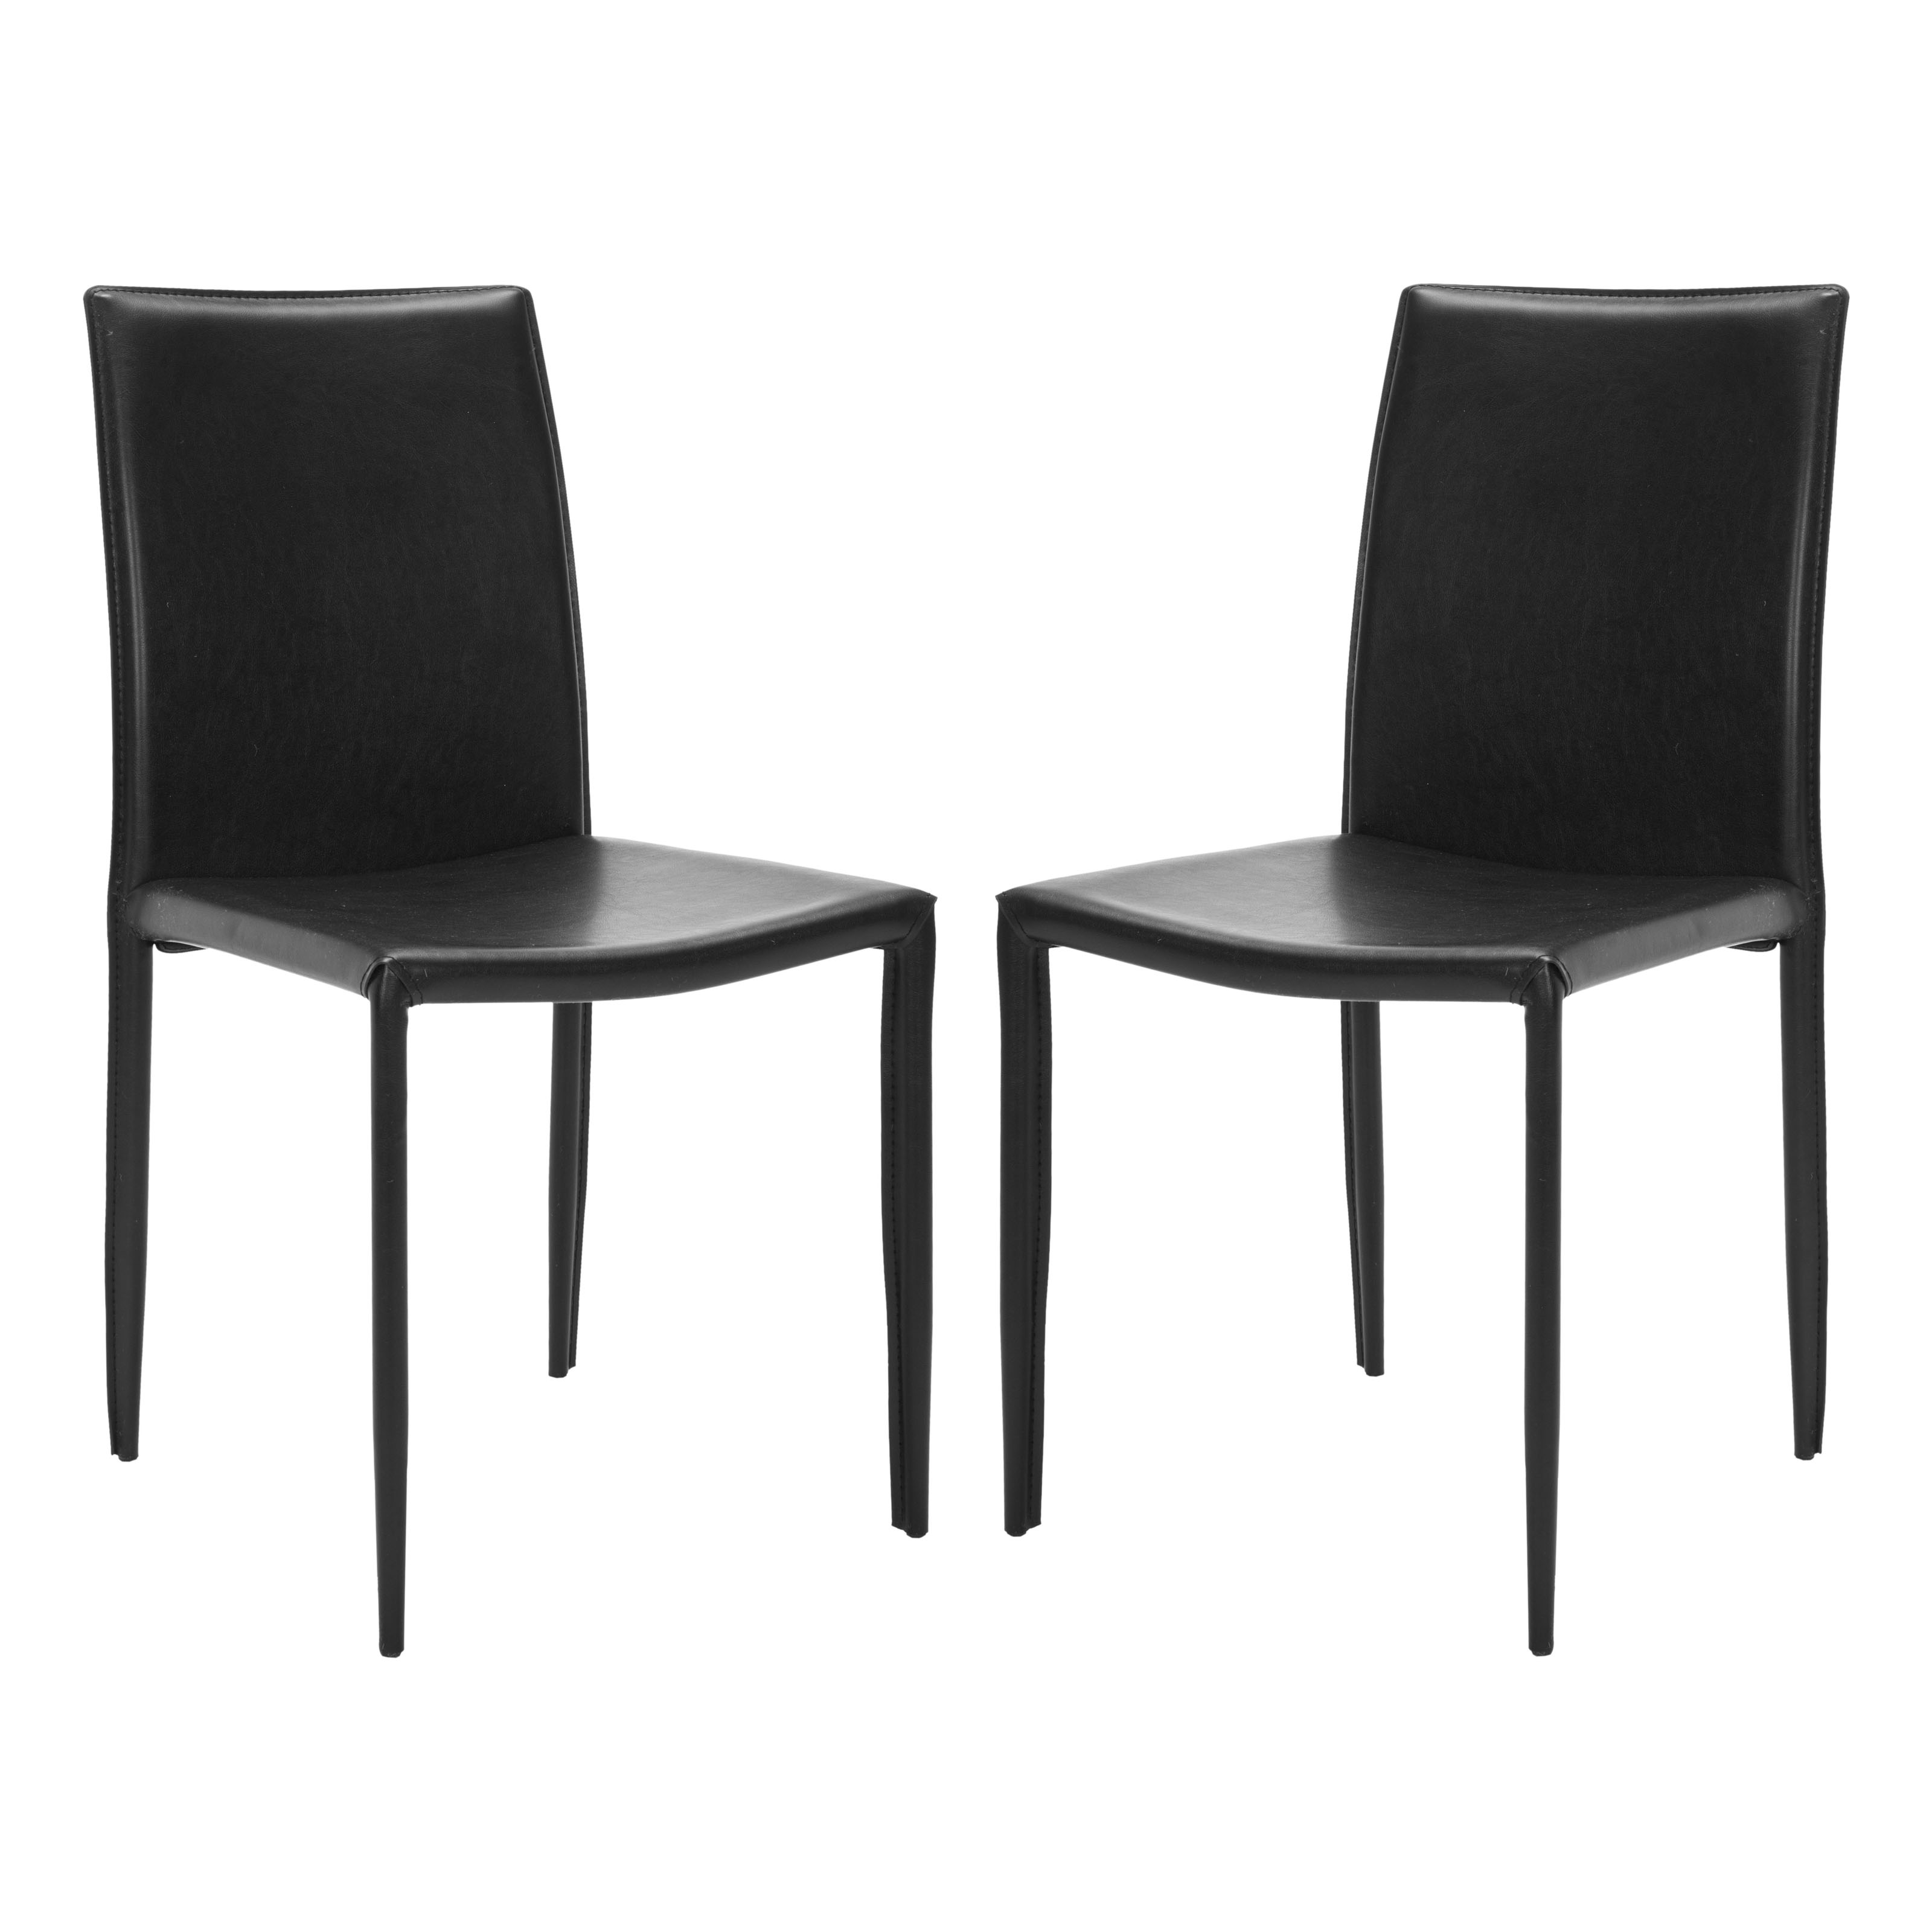 Safavieh Ken Dining Side Chairs Black Leather Set of 2